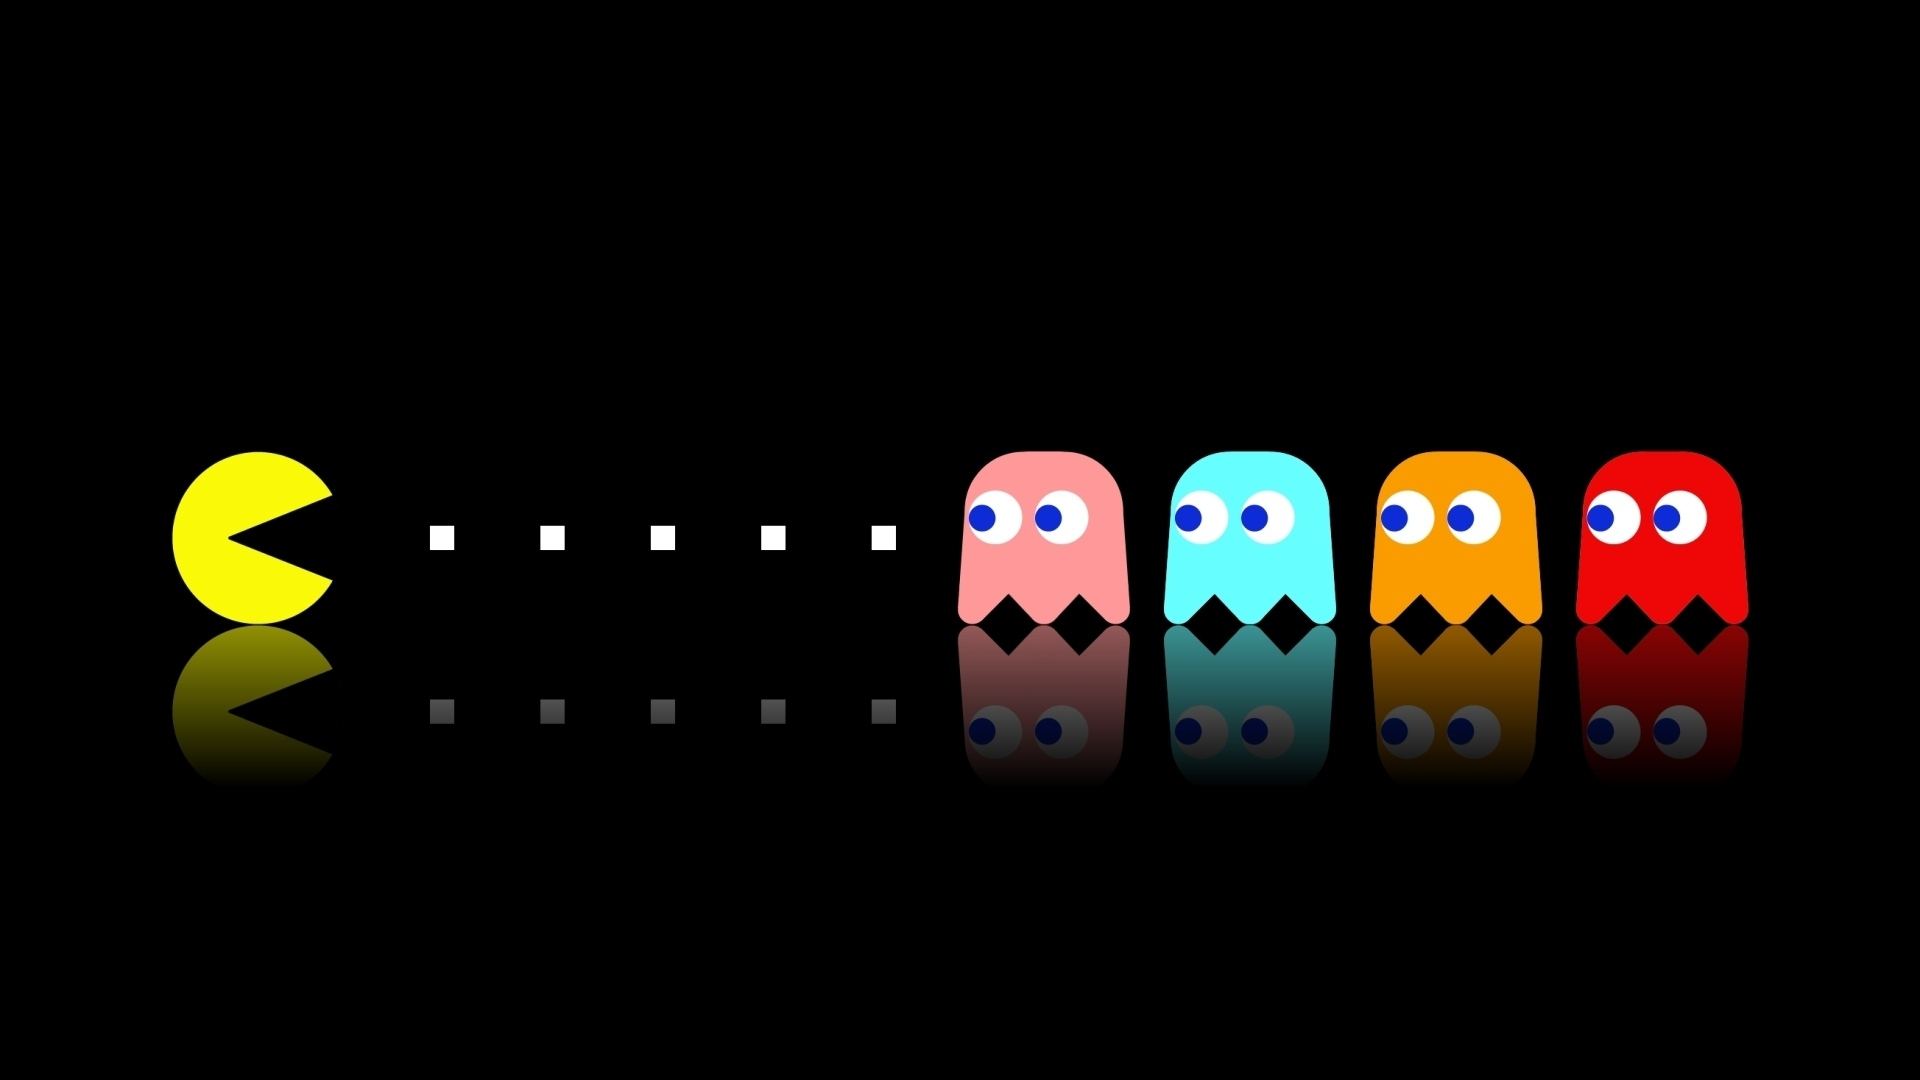 Download wallpaper 1920x1080 pacman game multi colored eating get the latest pacman game multi colored news pictures and videos and learn all about pacman game multi colored from wallpapers4u your wallpaper voltagebd Image collections